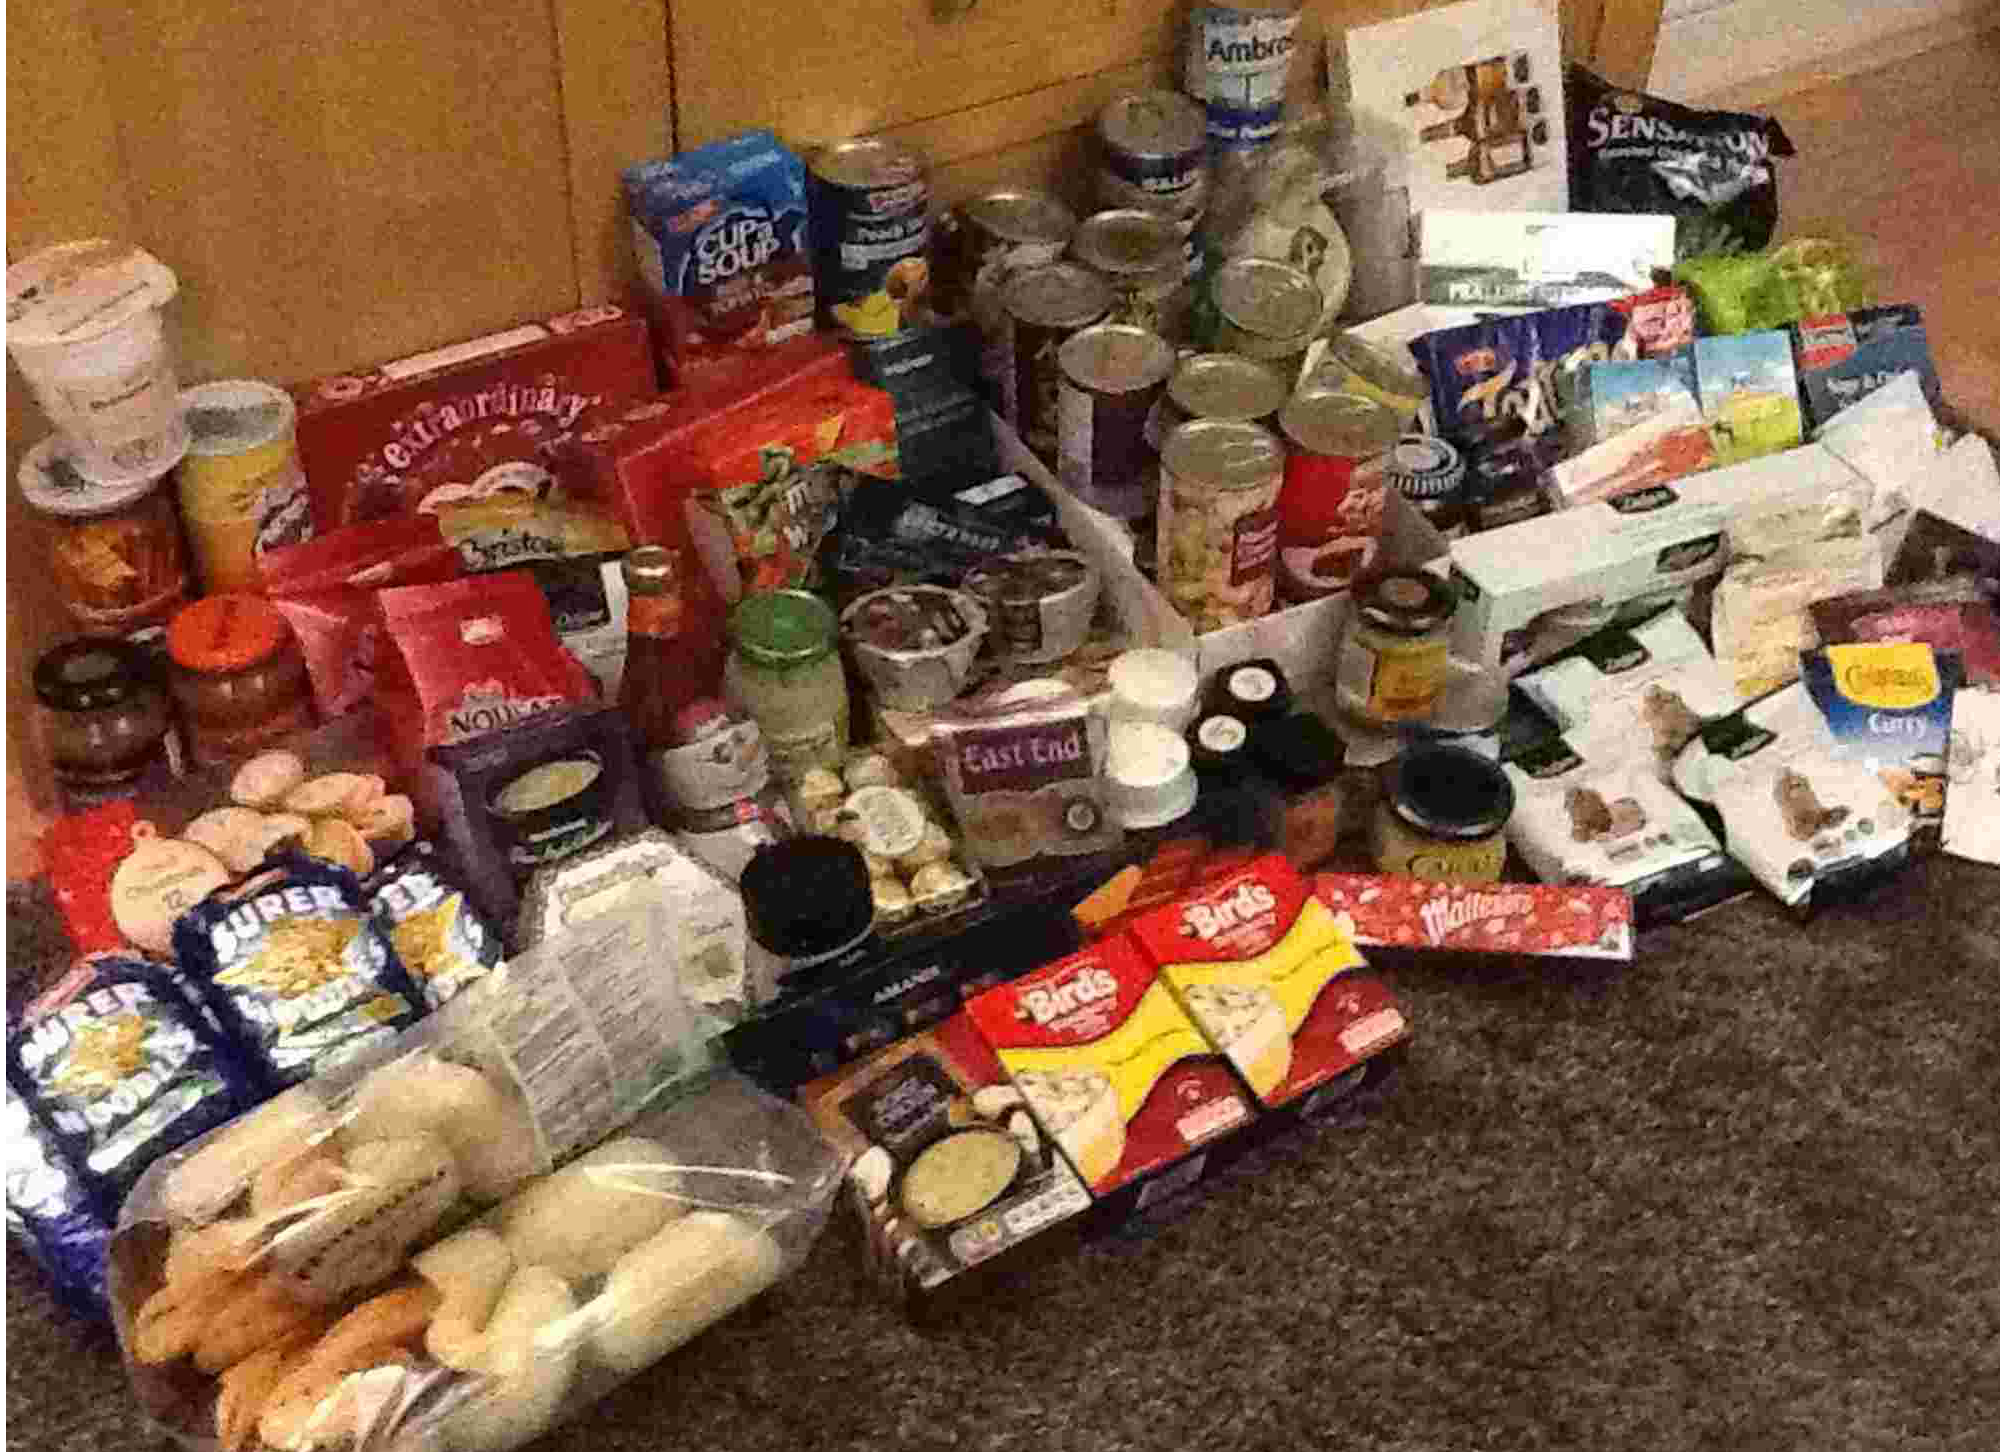 The food collected by the Harnham Slimming World group.